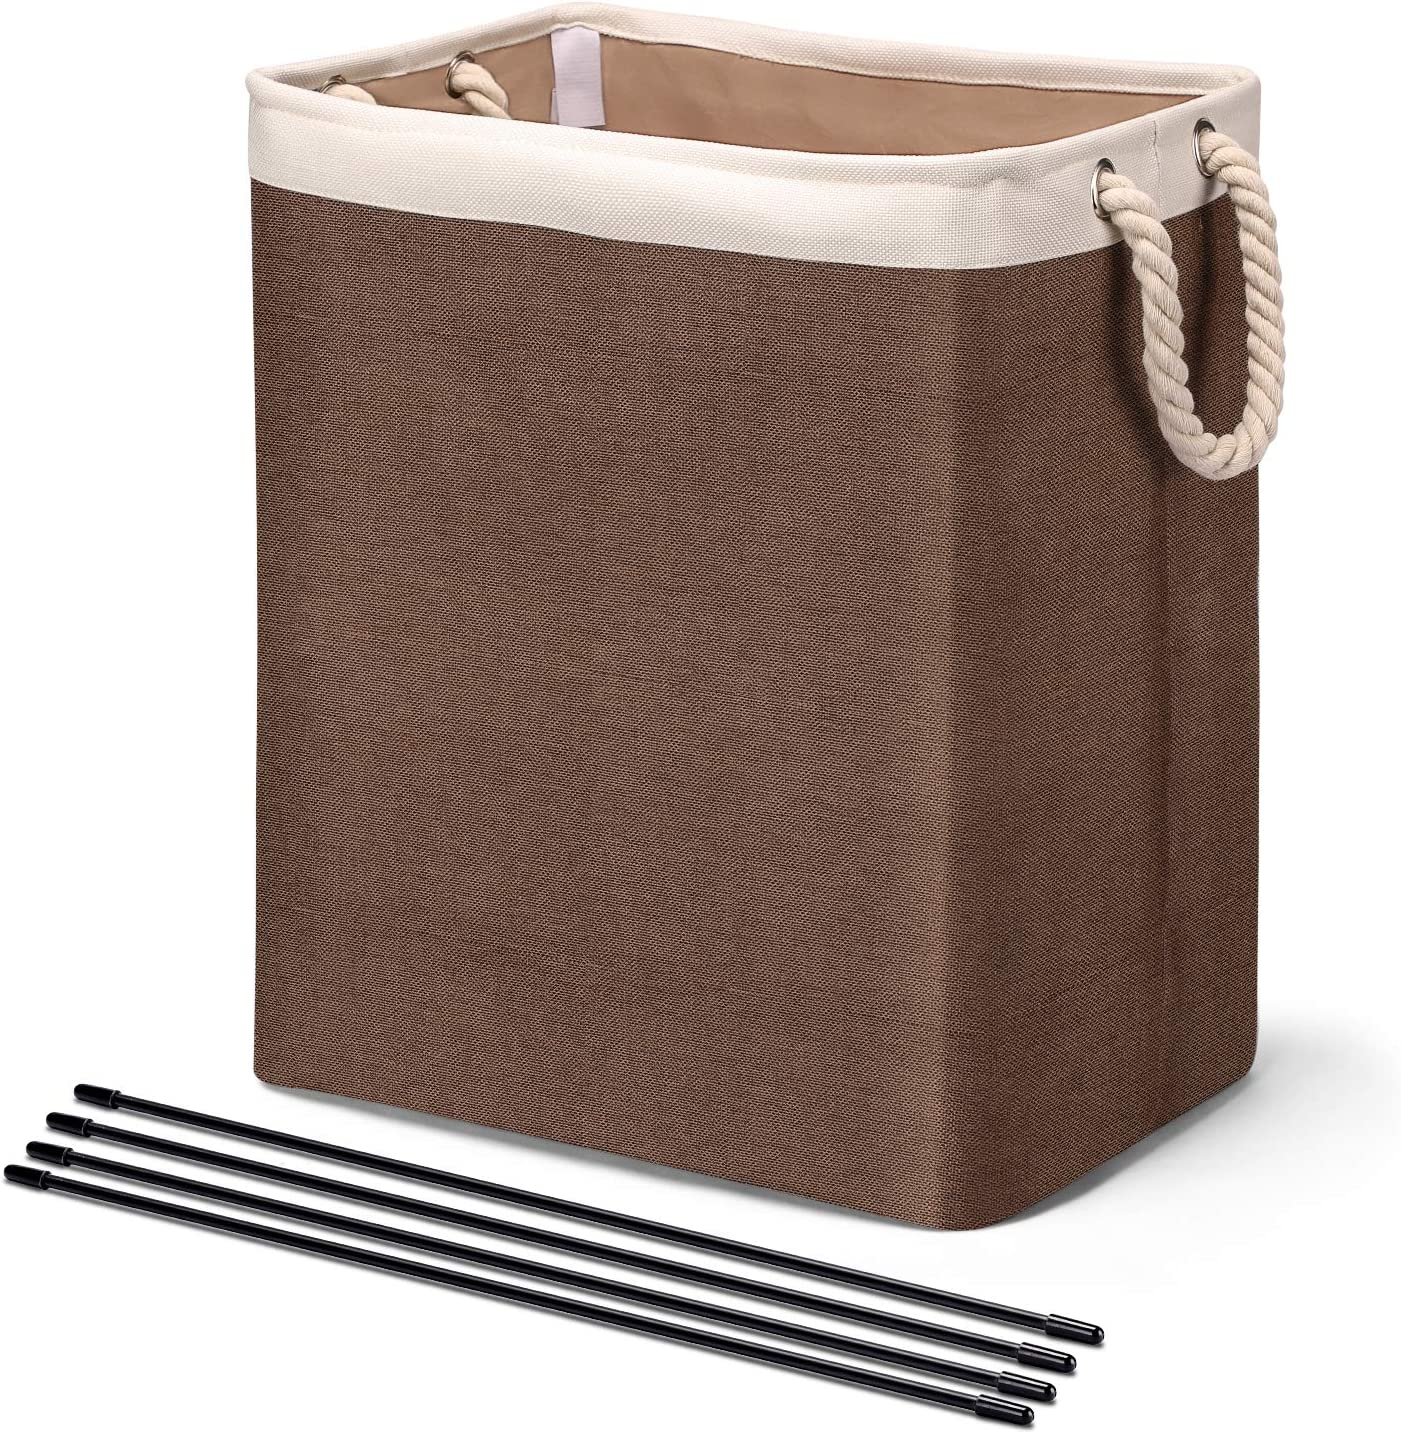 HOUSE DAY Laundry Basket with Handles Linen Laundry Hampers for Laundry Storage Baskets Built-in Lining with Detachable Brackets Well-Holding Foldable Laundry Bags for Clothing Organization (Brown)